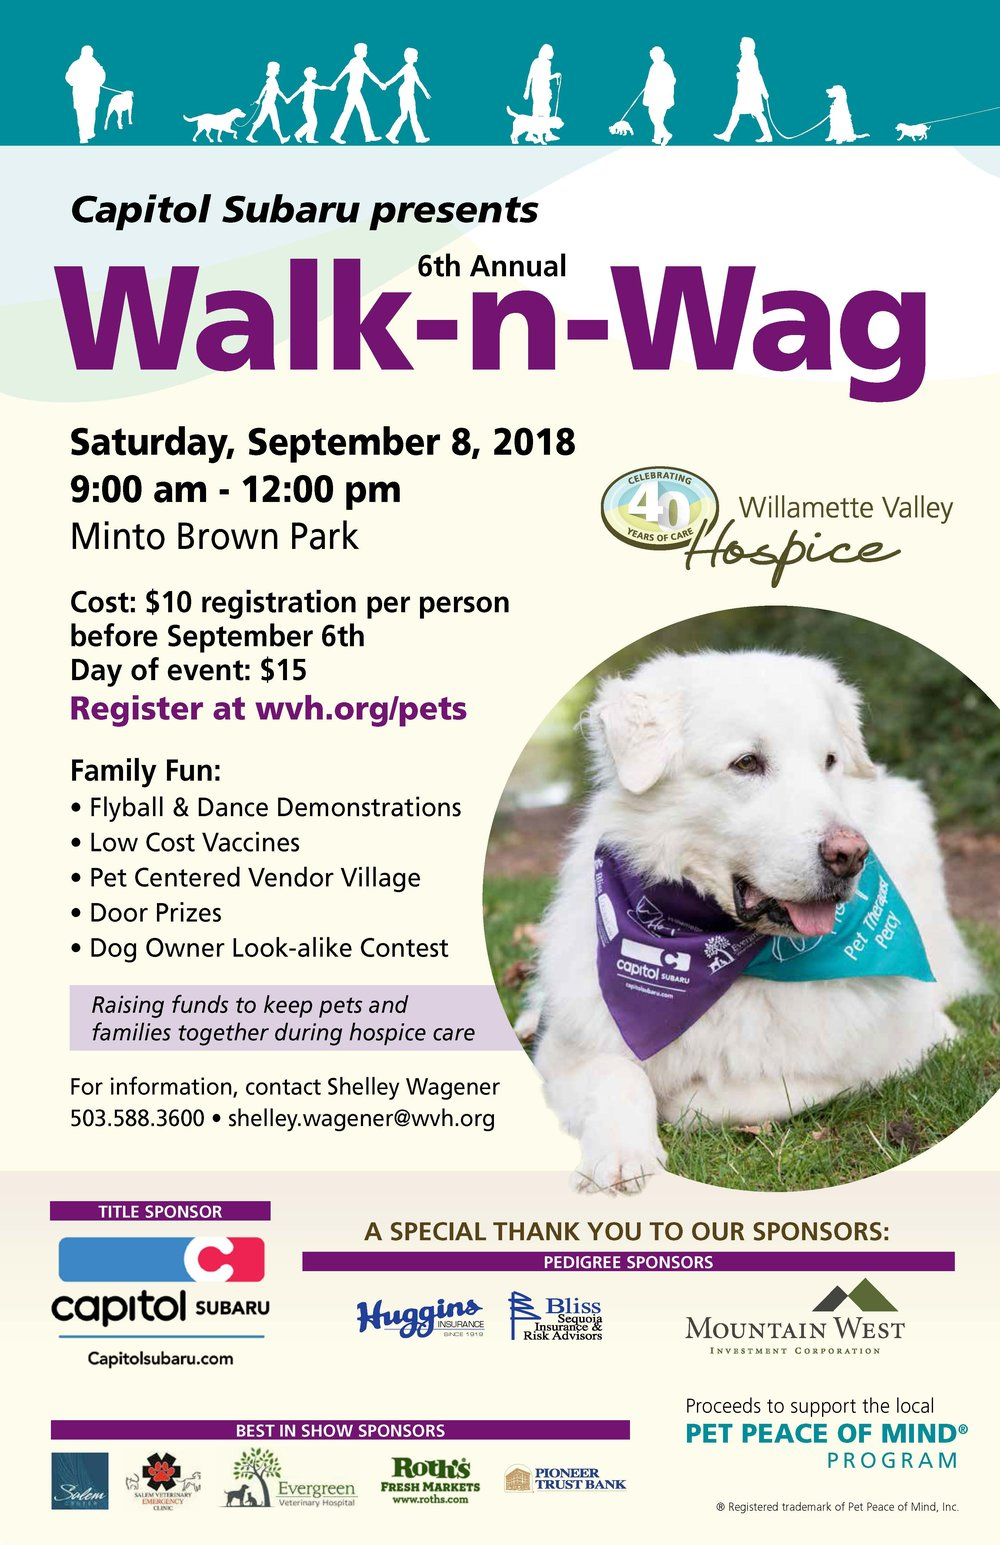 Walk n Wag flyer 2018 11x17.jpg